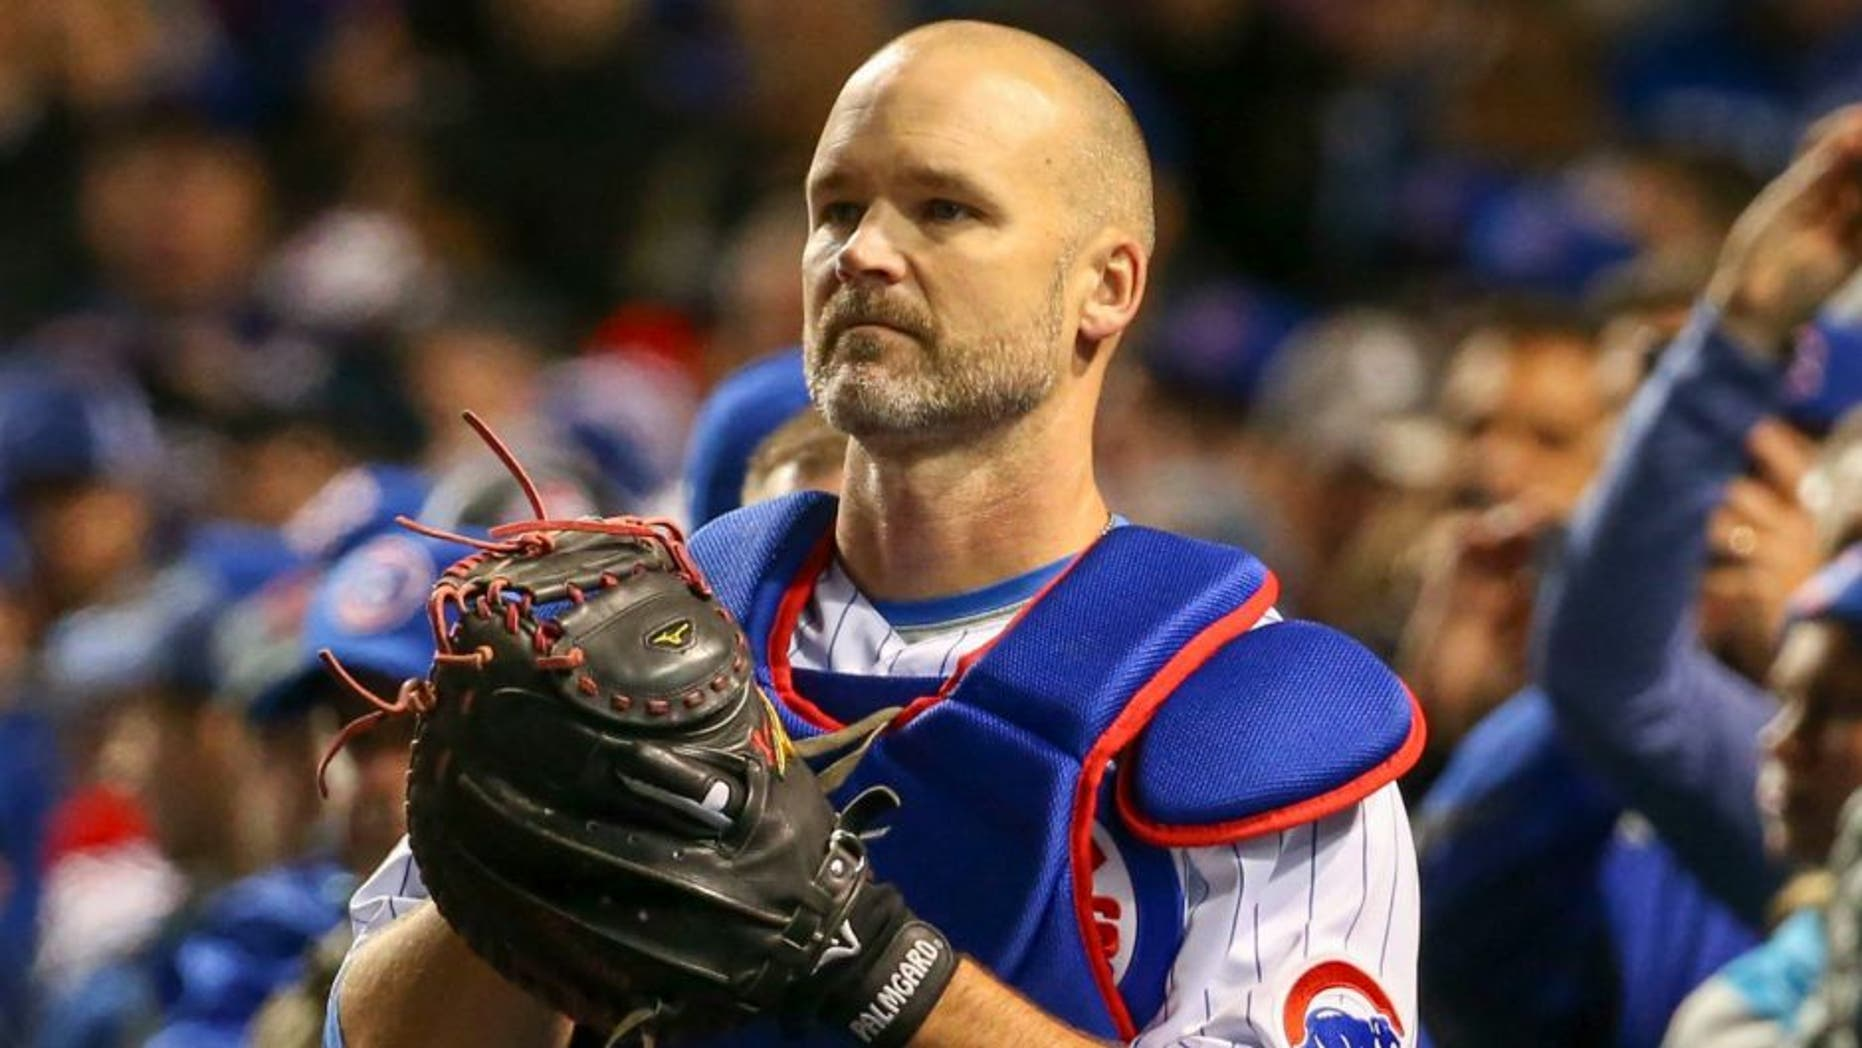 Oct 30, 2016; Chicago, IL, USA; Chicago Cubs catcher David Ross (3) stands in the dugout before game five of the 2016 World Series against the Cleveland Indians at Wrigley Field. Mandatory Credit: Jerry Lai-USA TODAY Sports